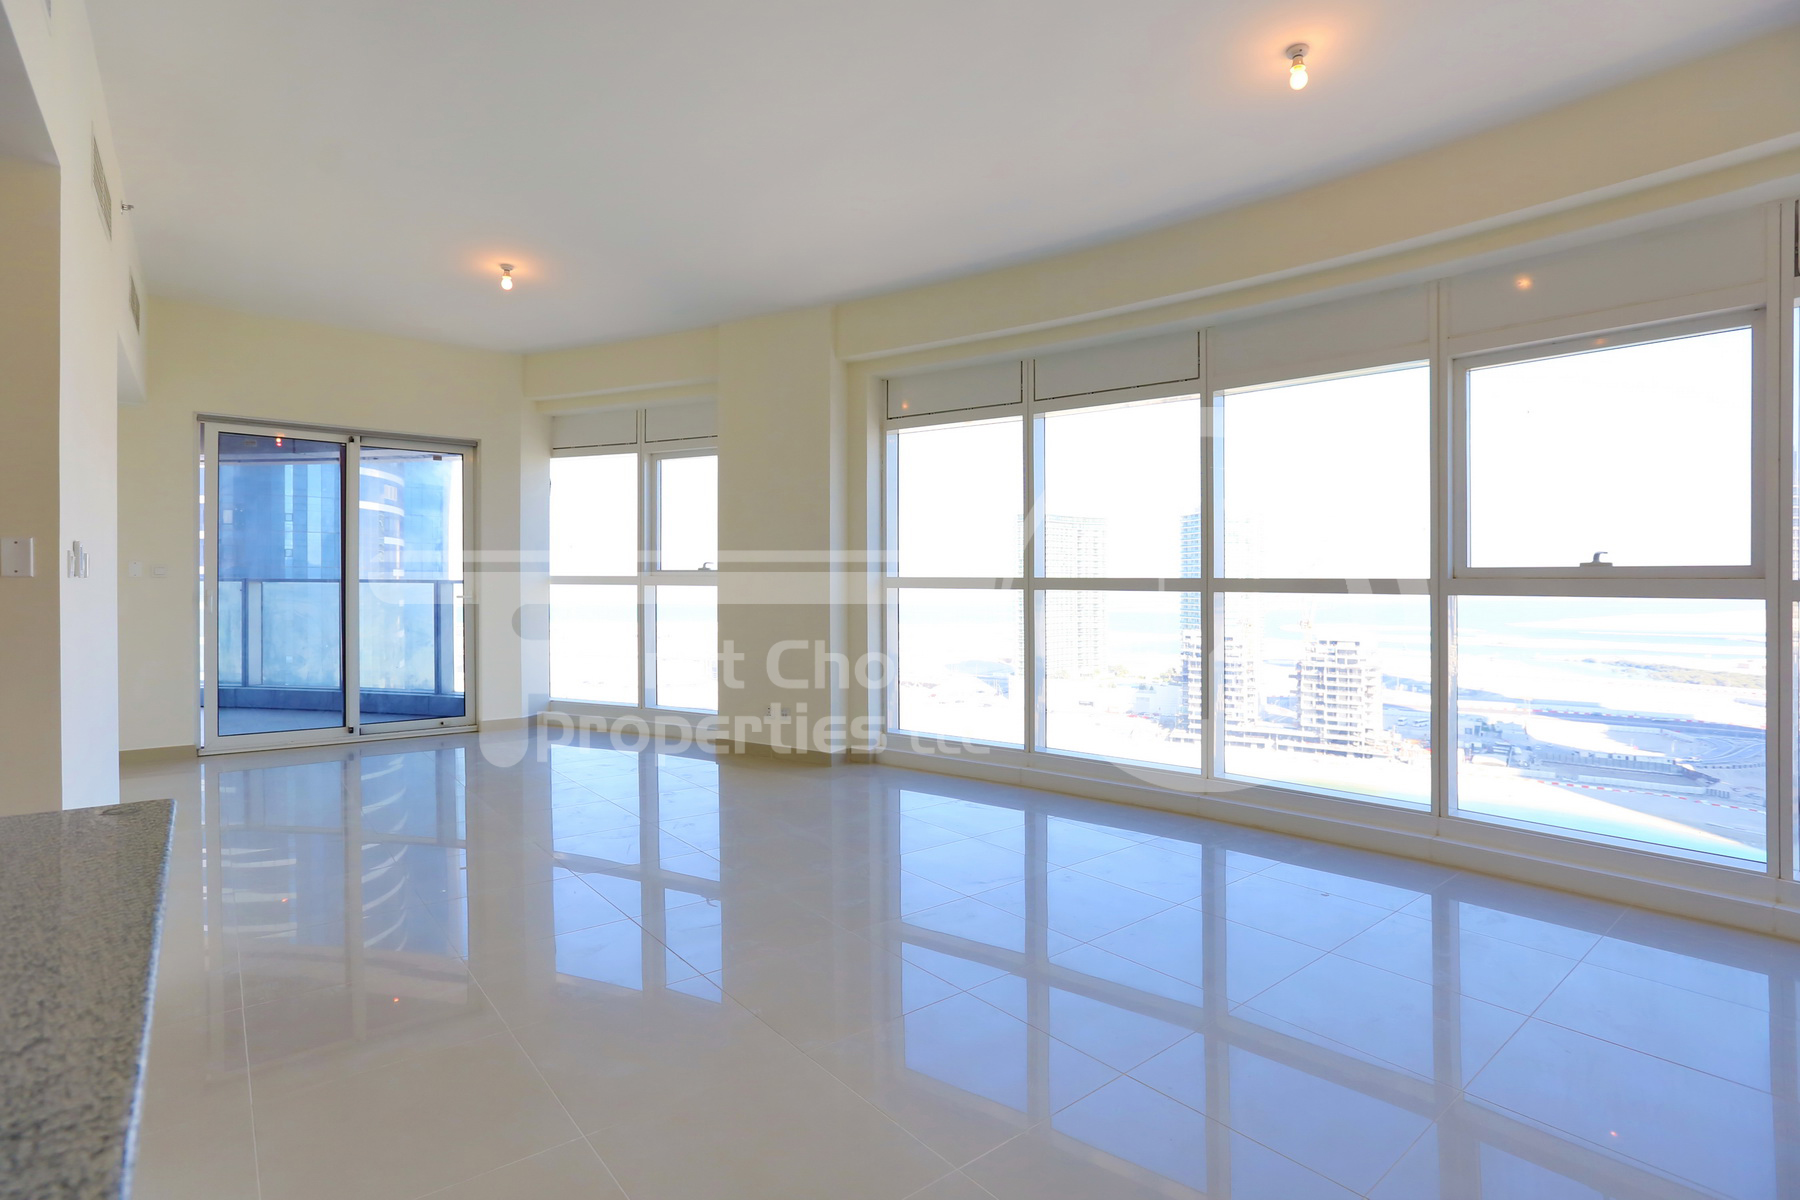 2BR Apartment - Abu Dhabi - UAE - Al Reem Island - City of Lights - C10 Building (10).JPG